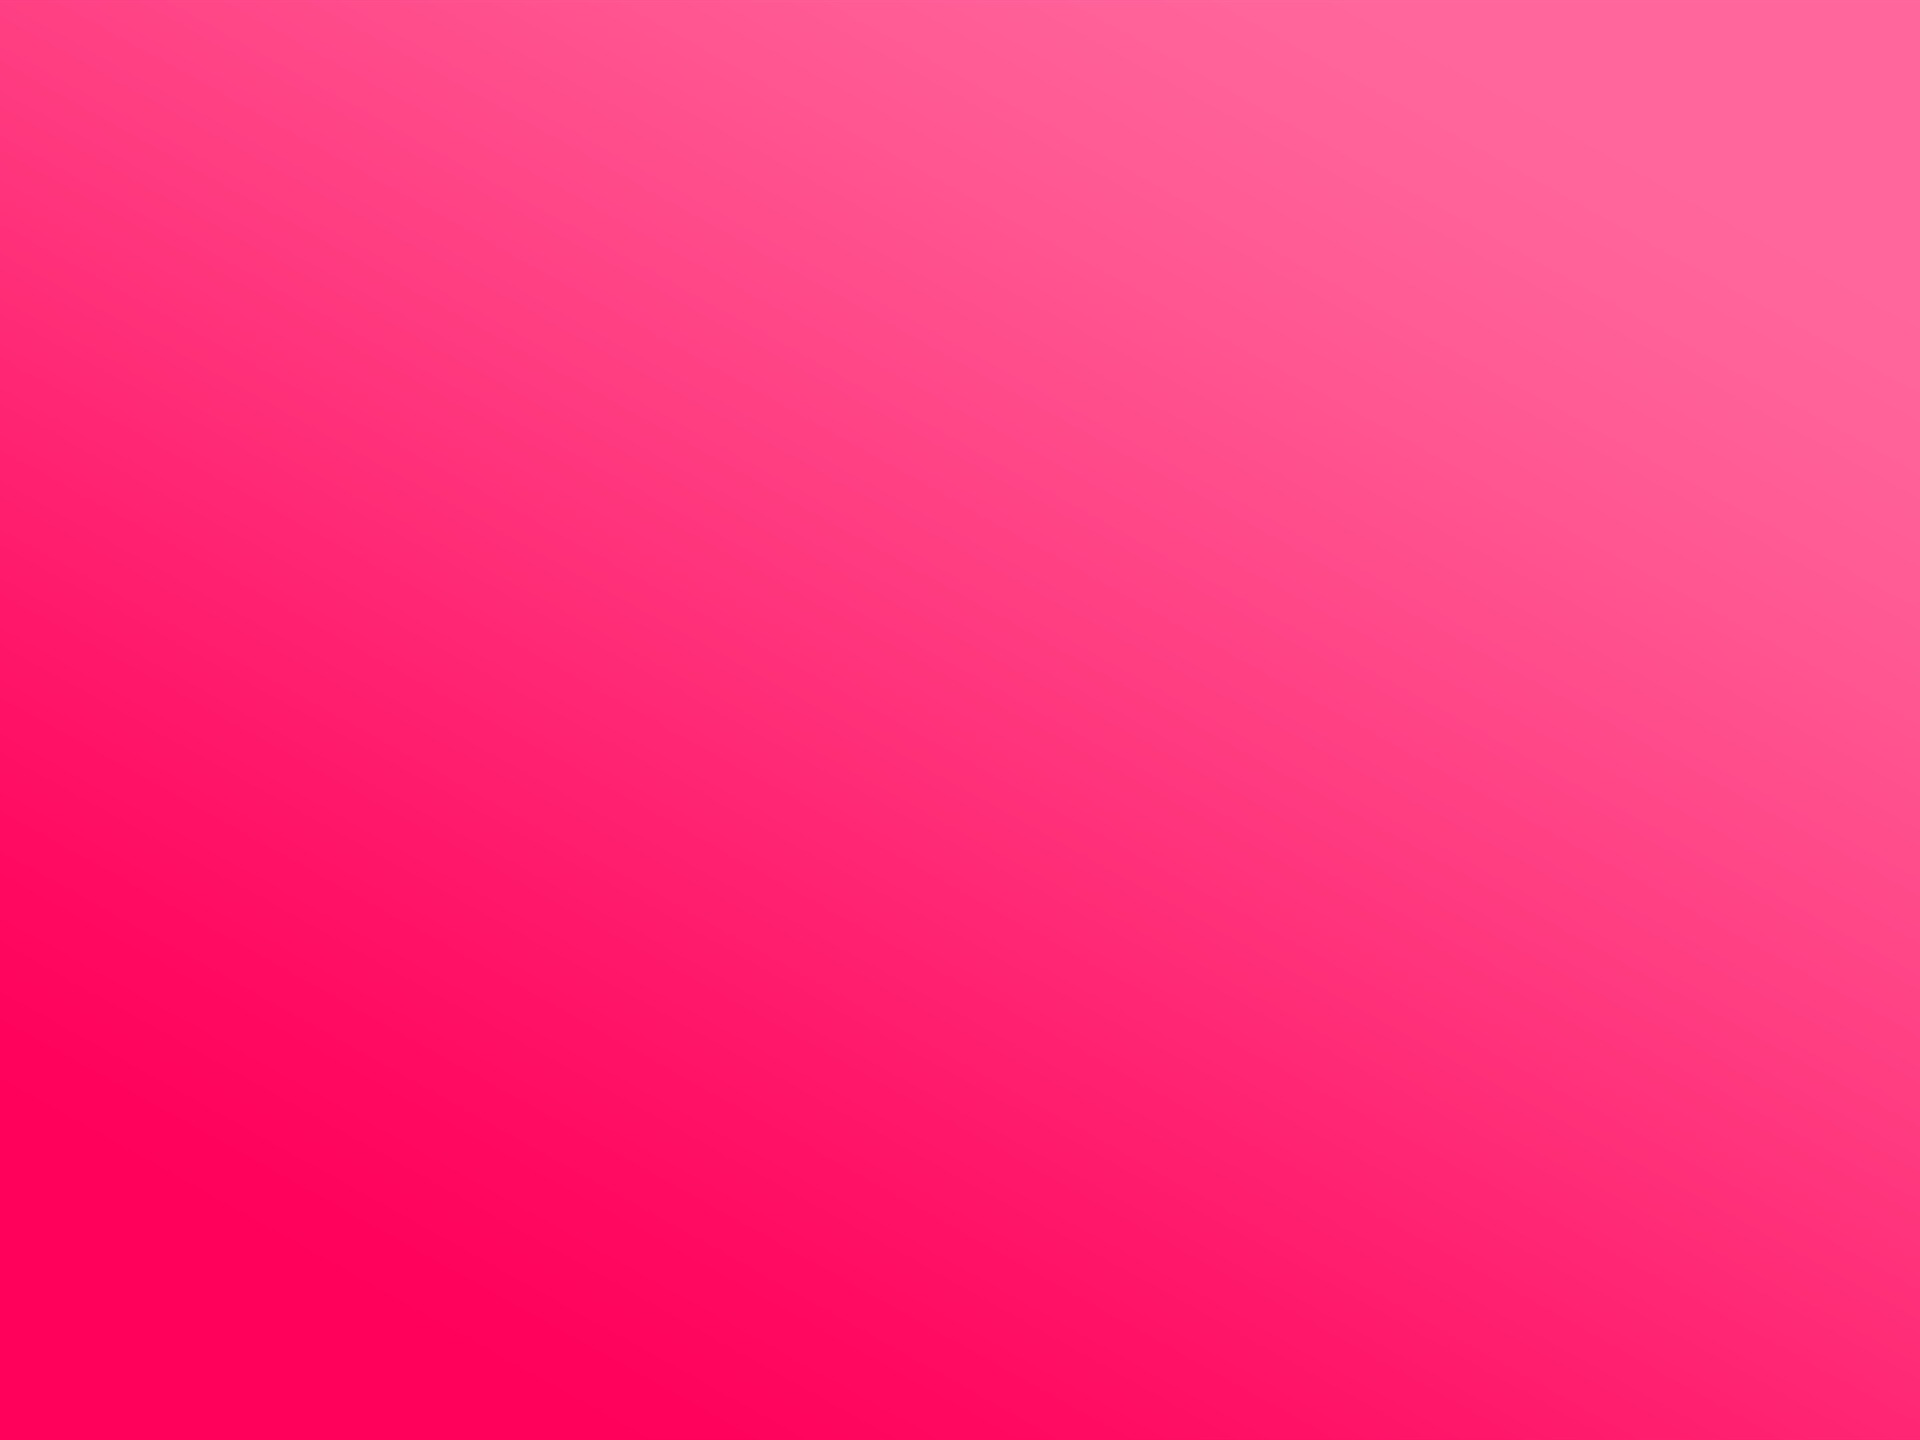 Pink Solid Color Light Bright Design Theme Hd Wallpapers